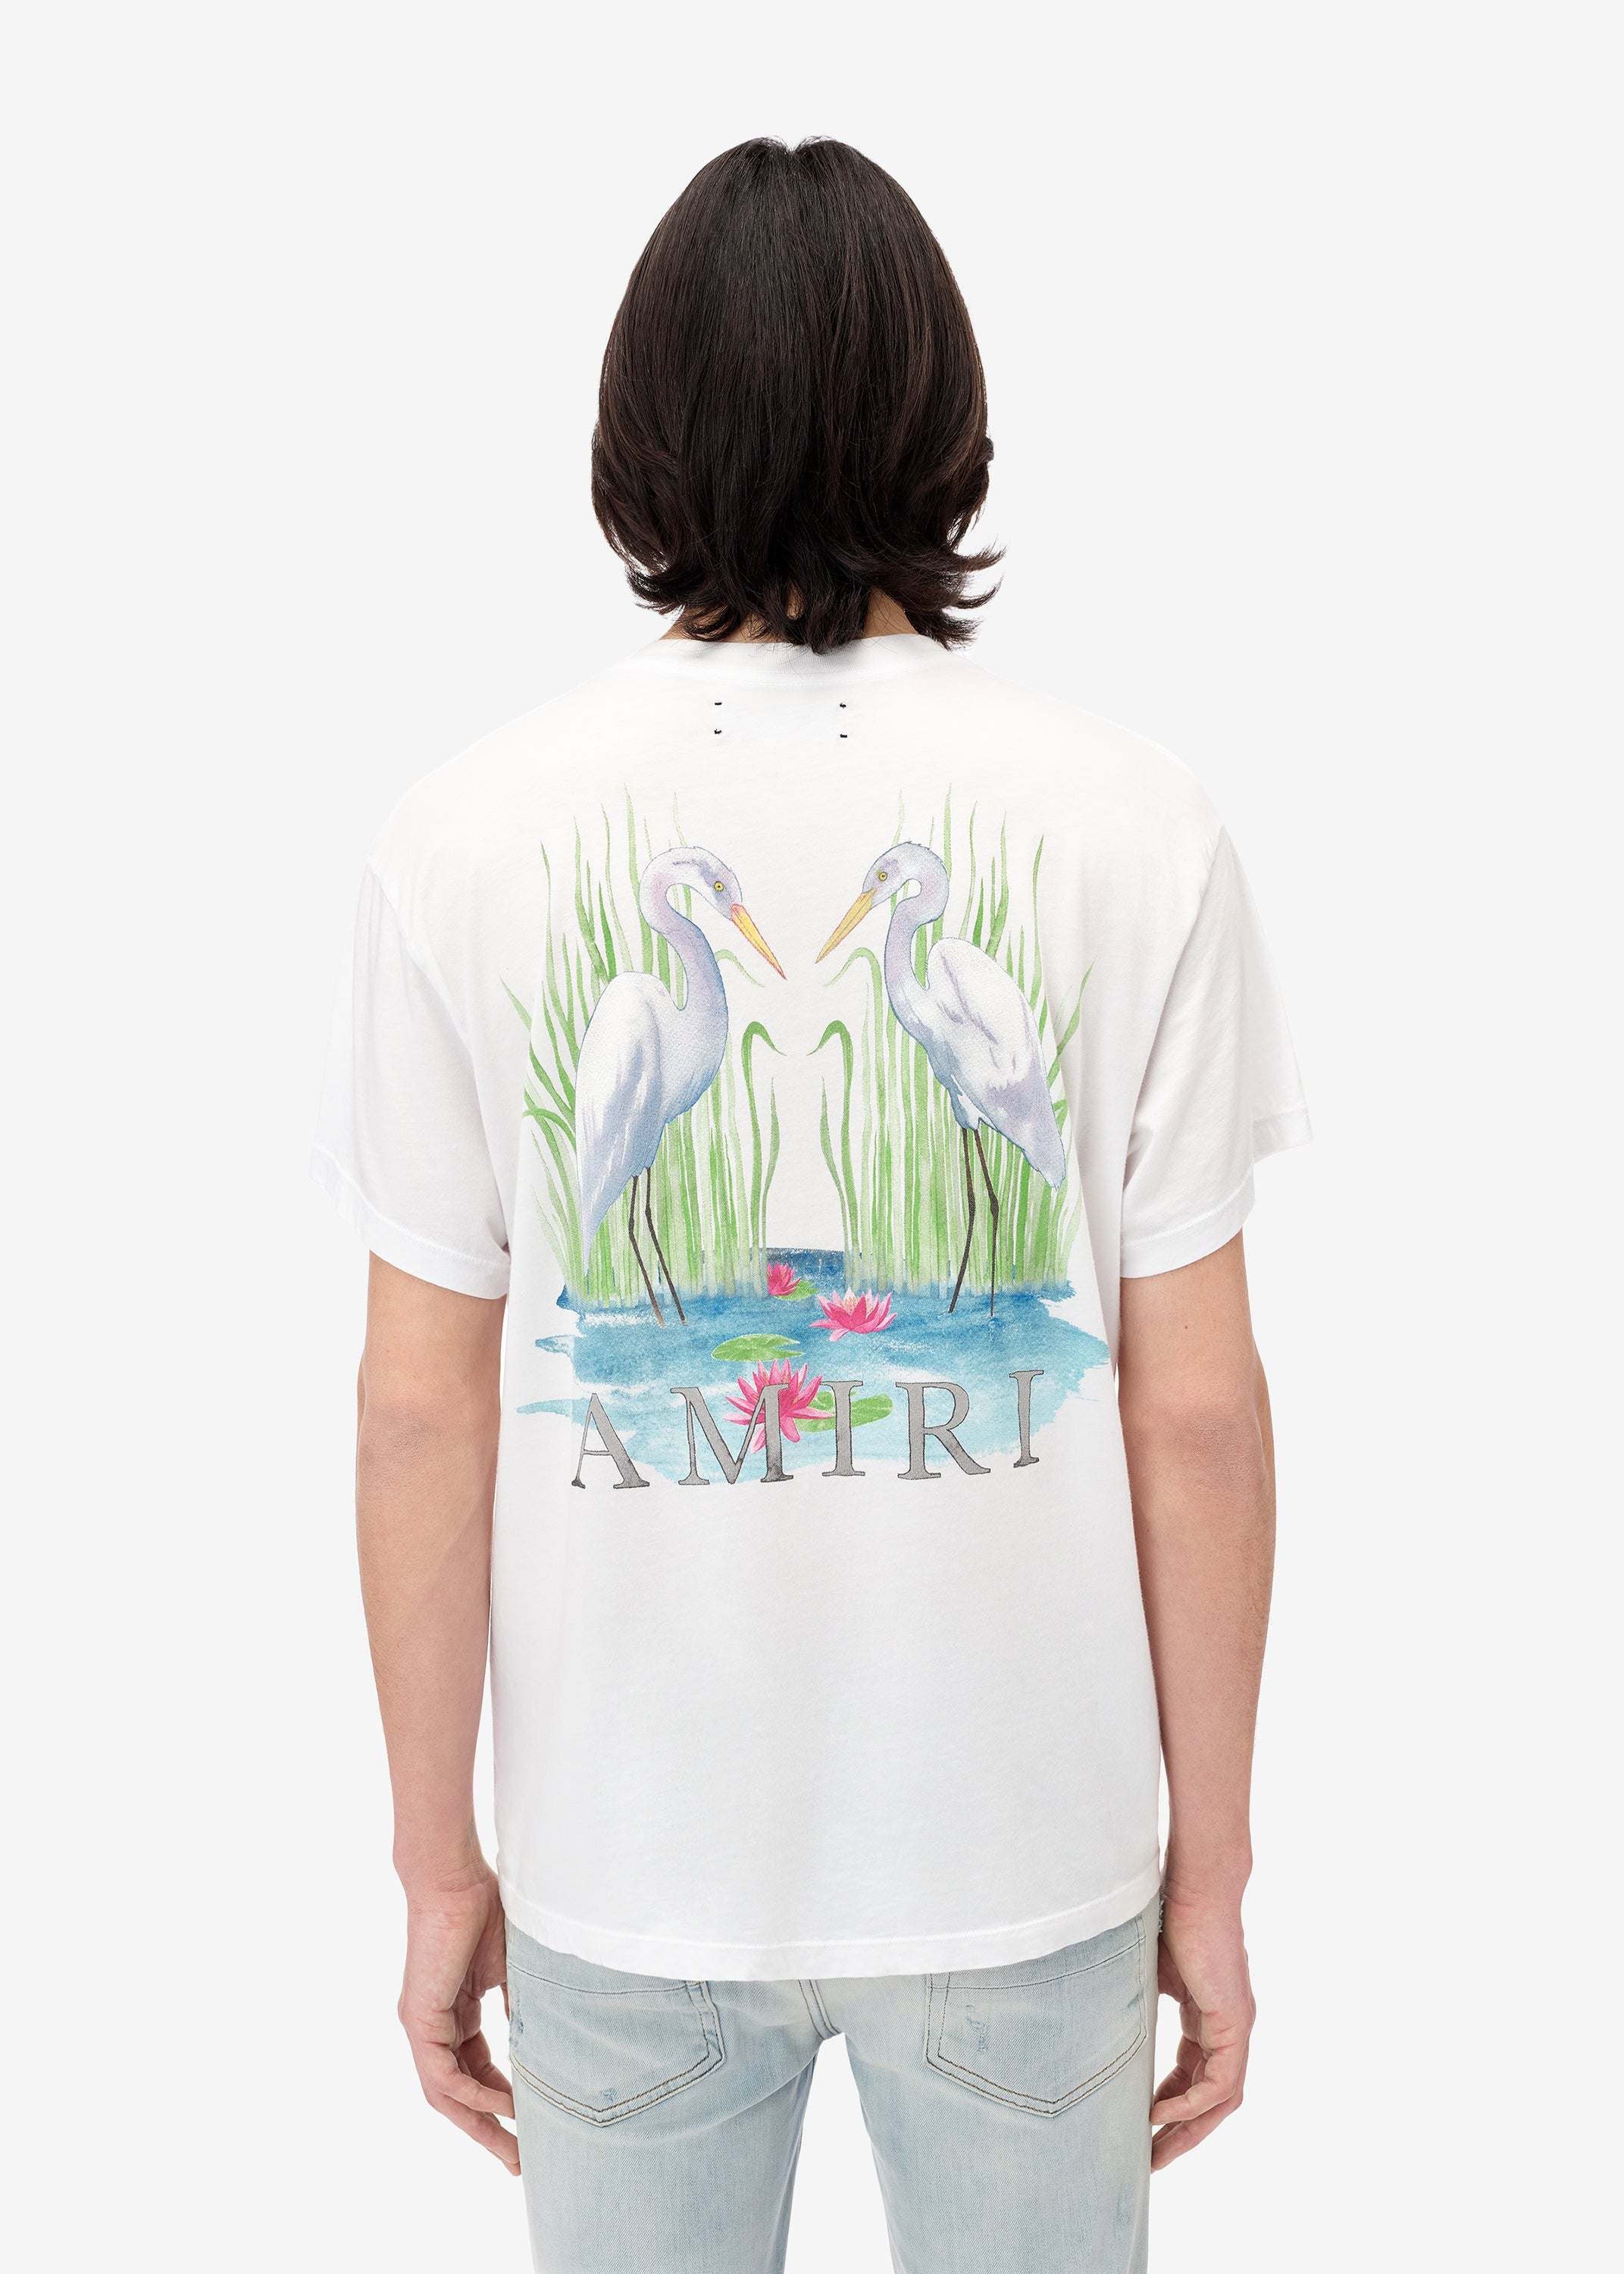 standing-egret-tee-web-exclusive-white-image-3